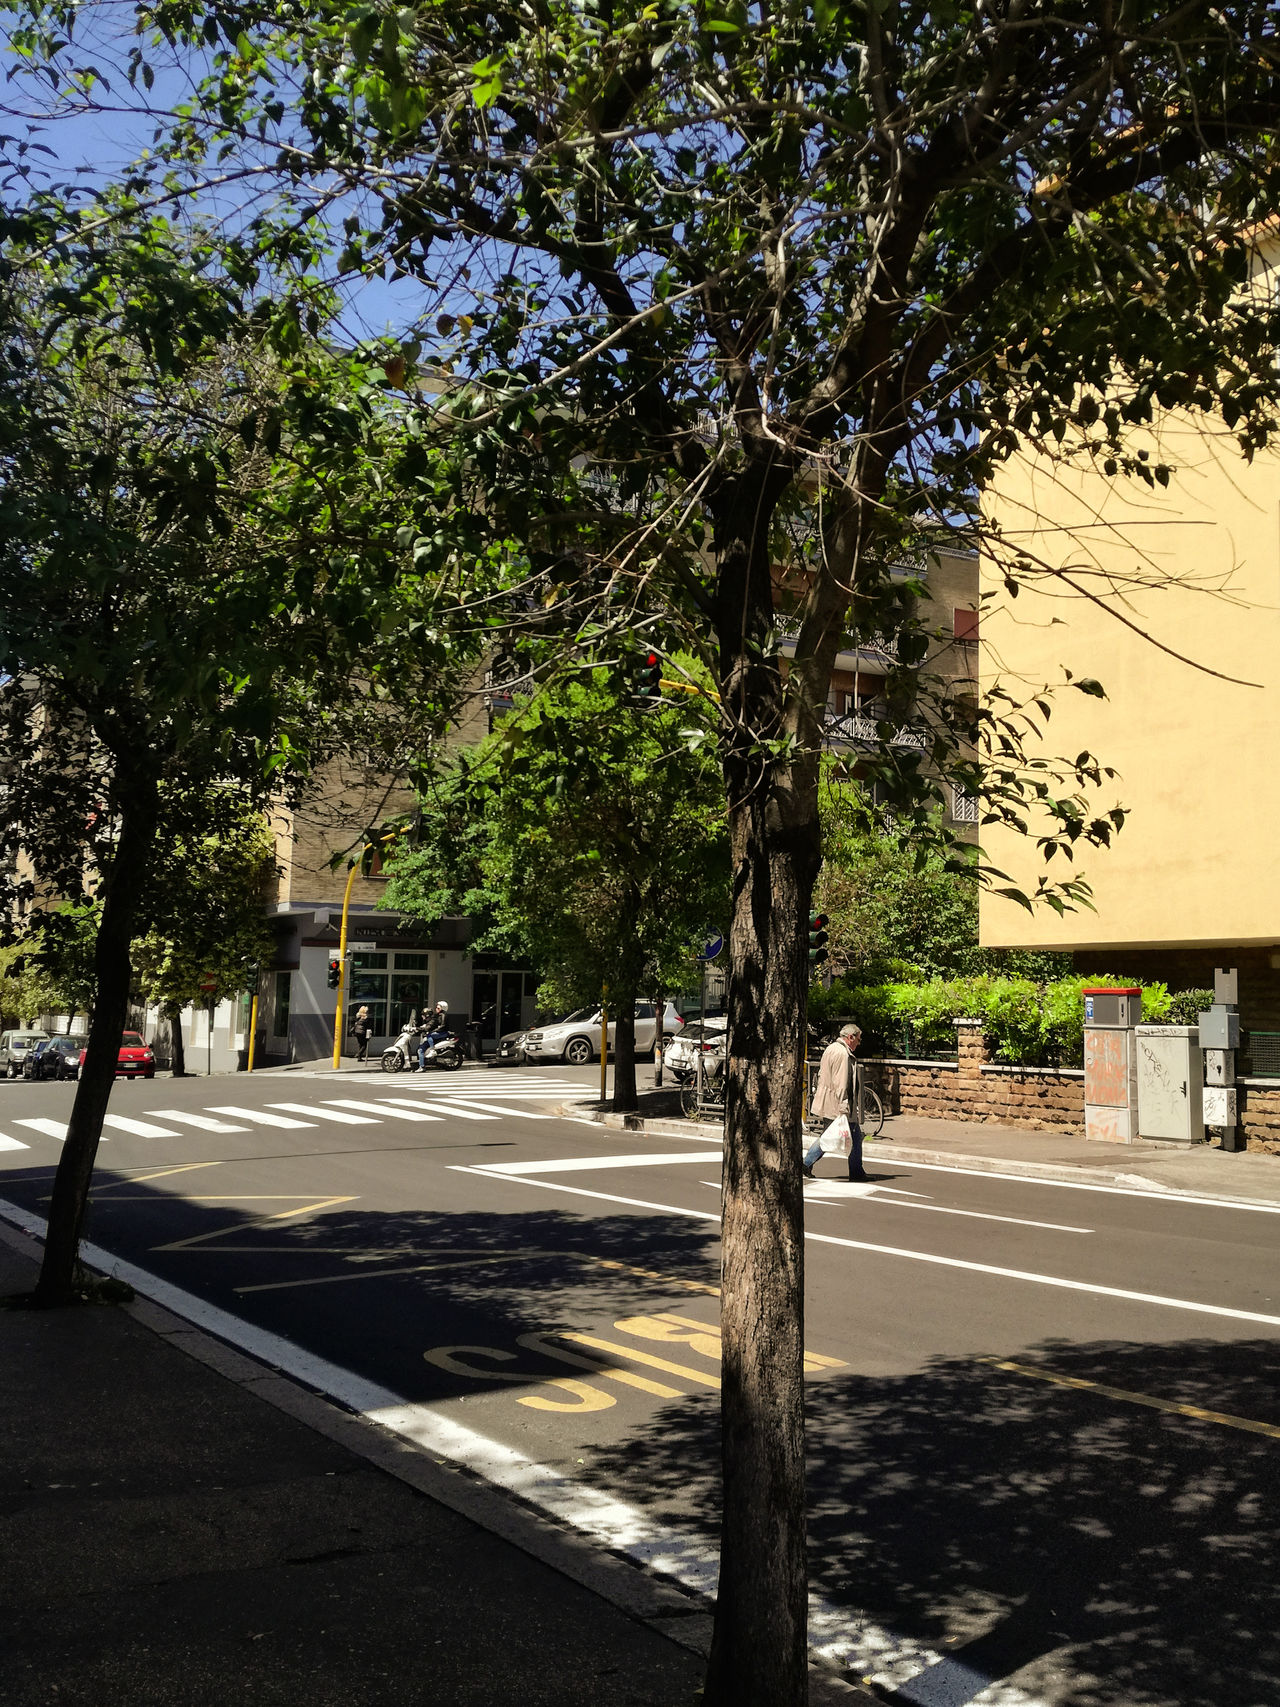 Architecture Building Exterior Built Structure Car City Day Growth Monteverde Vecchio Nature No People Outdoors Road Shadows & Lights Sky Street Transportation Tree